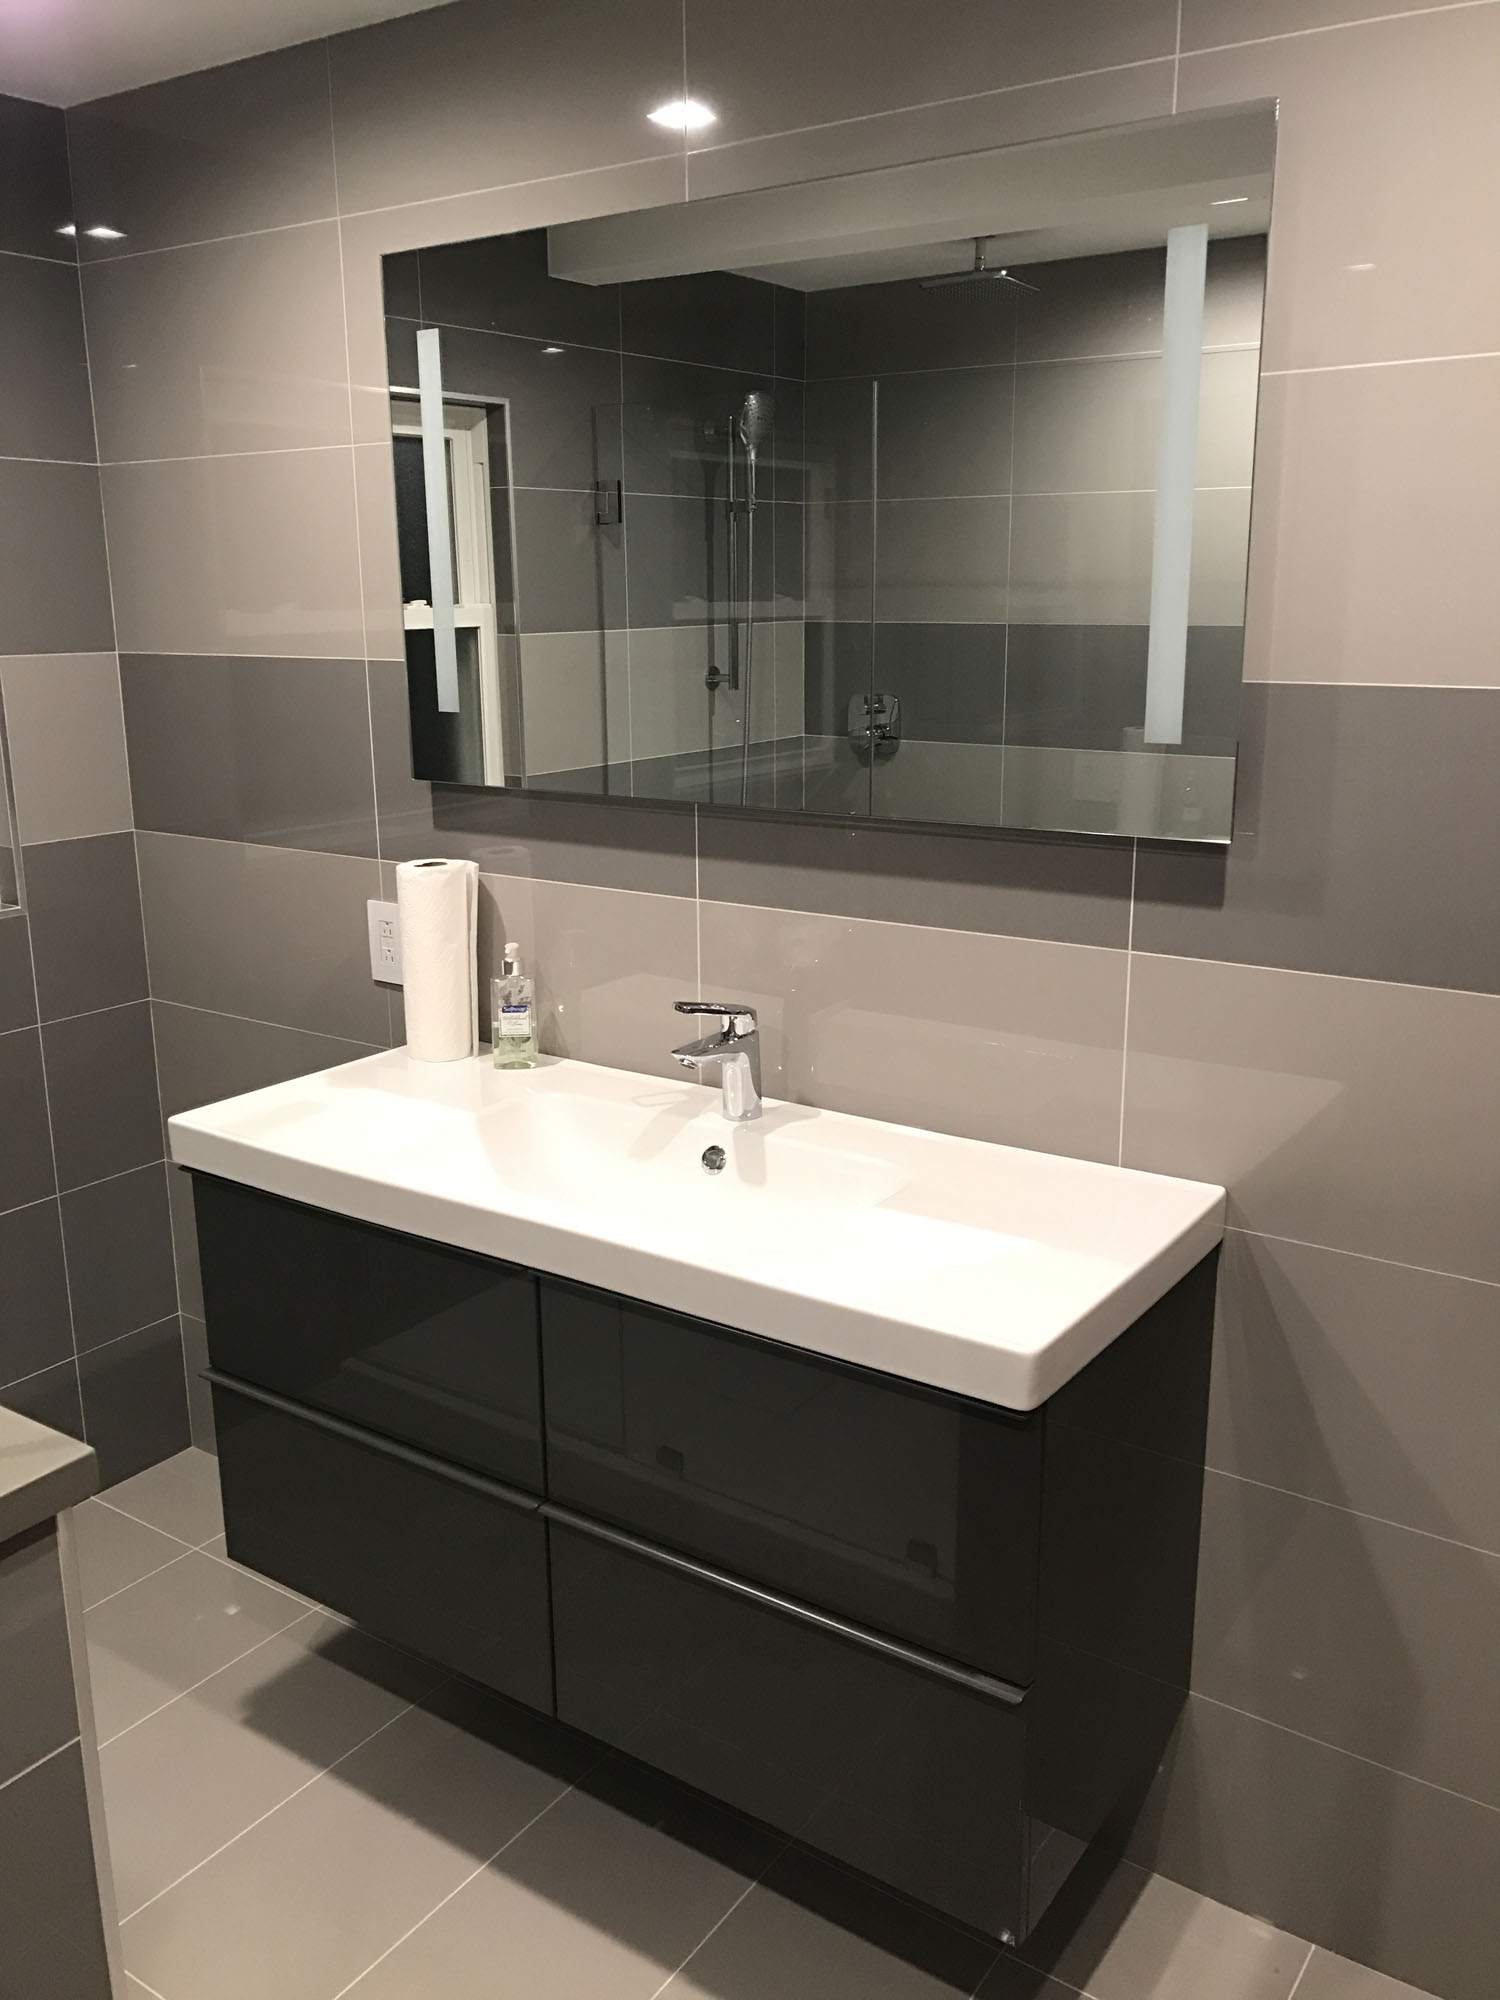 Rafal Wasniowski Author At Sunny Construction Remodeling - Bathroom remodeling schaumburg